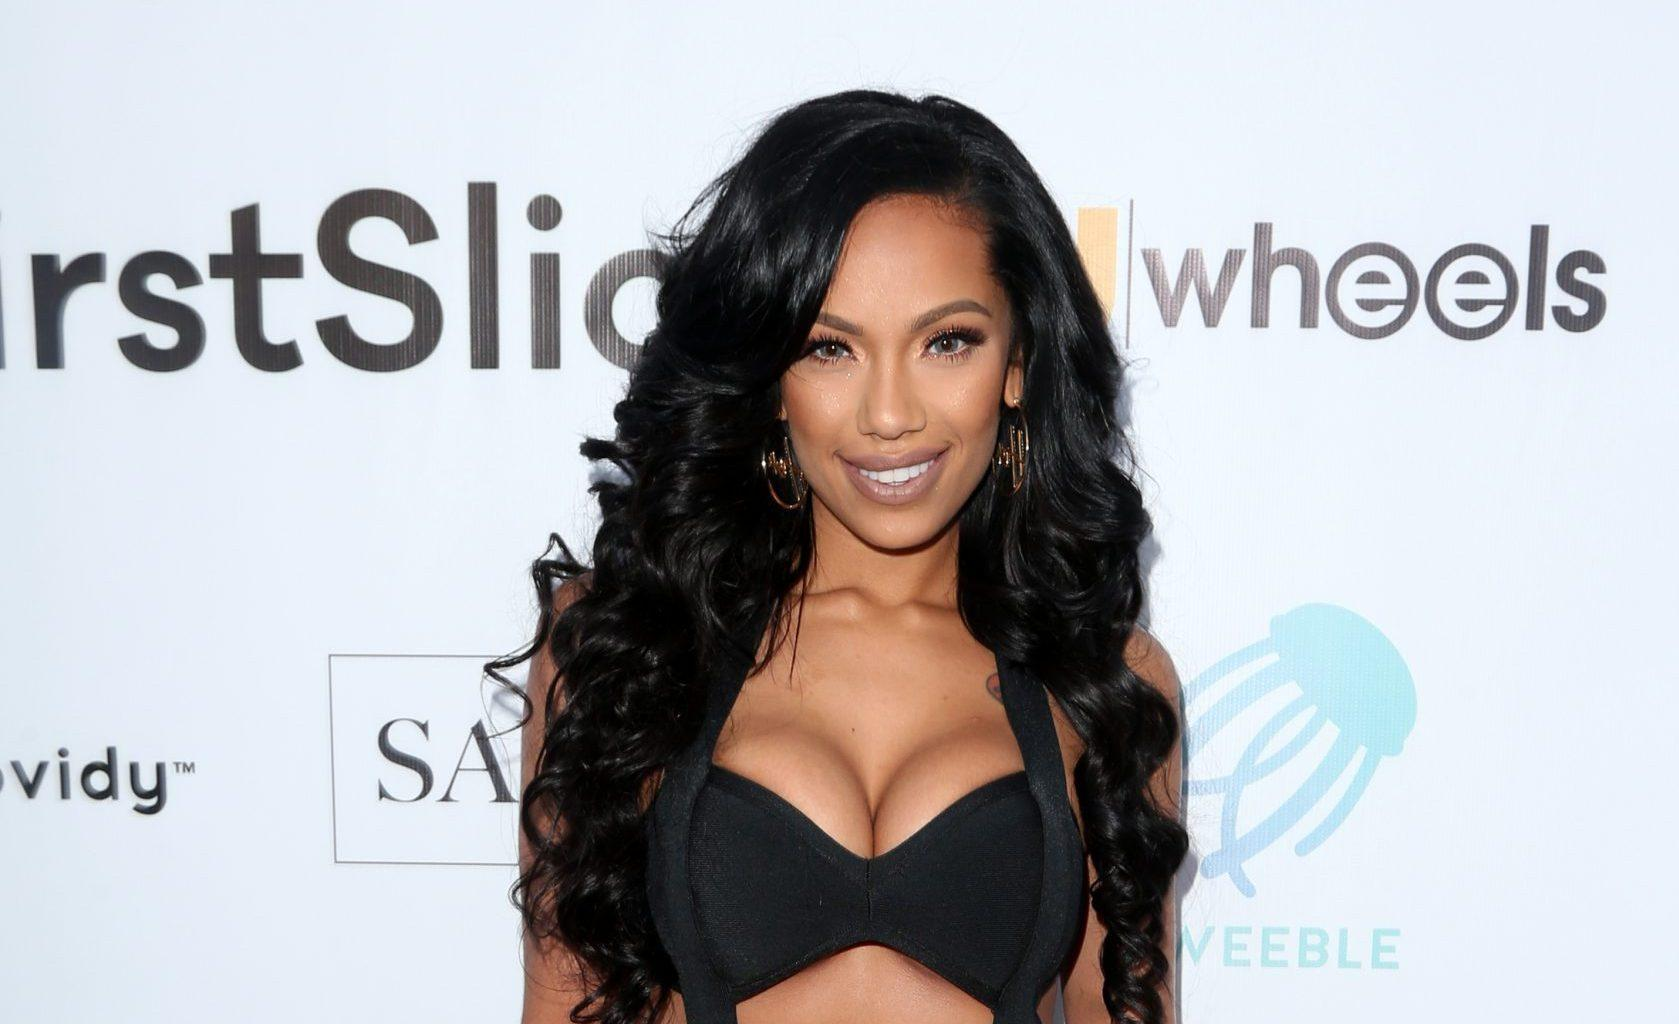 Erica Mena Is On Her Way To Getting Back Her Snatched Body - See This New Photo She Shared